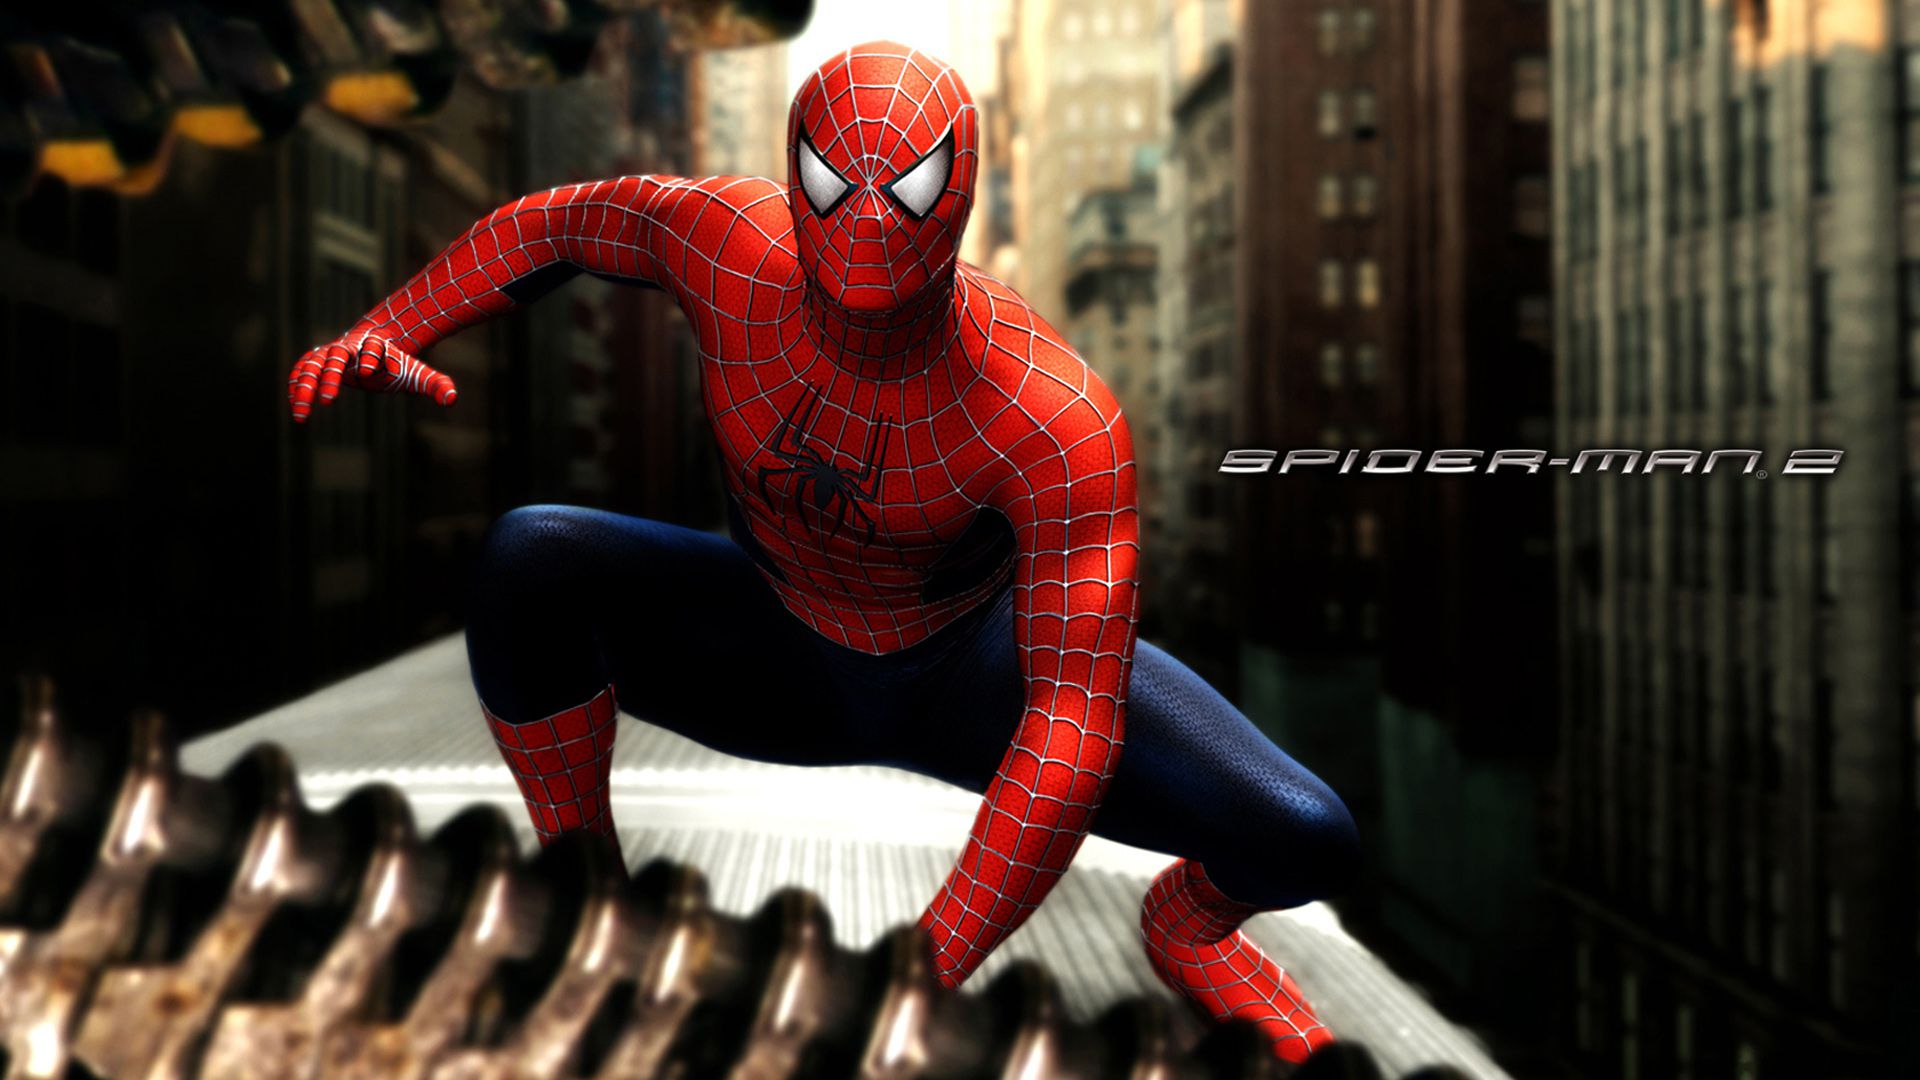 spider-man 2 full hd wallpaper and background image | 1920x1080 | id